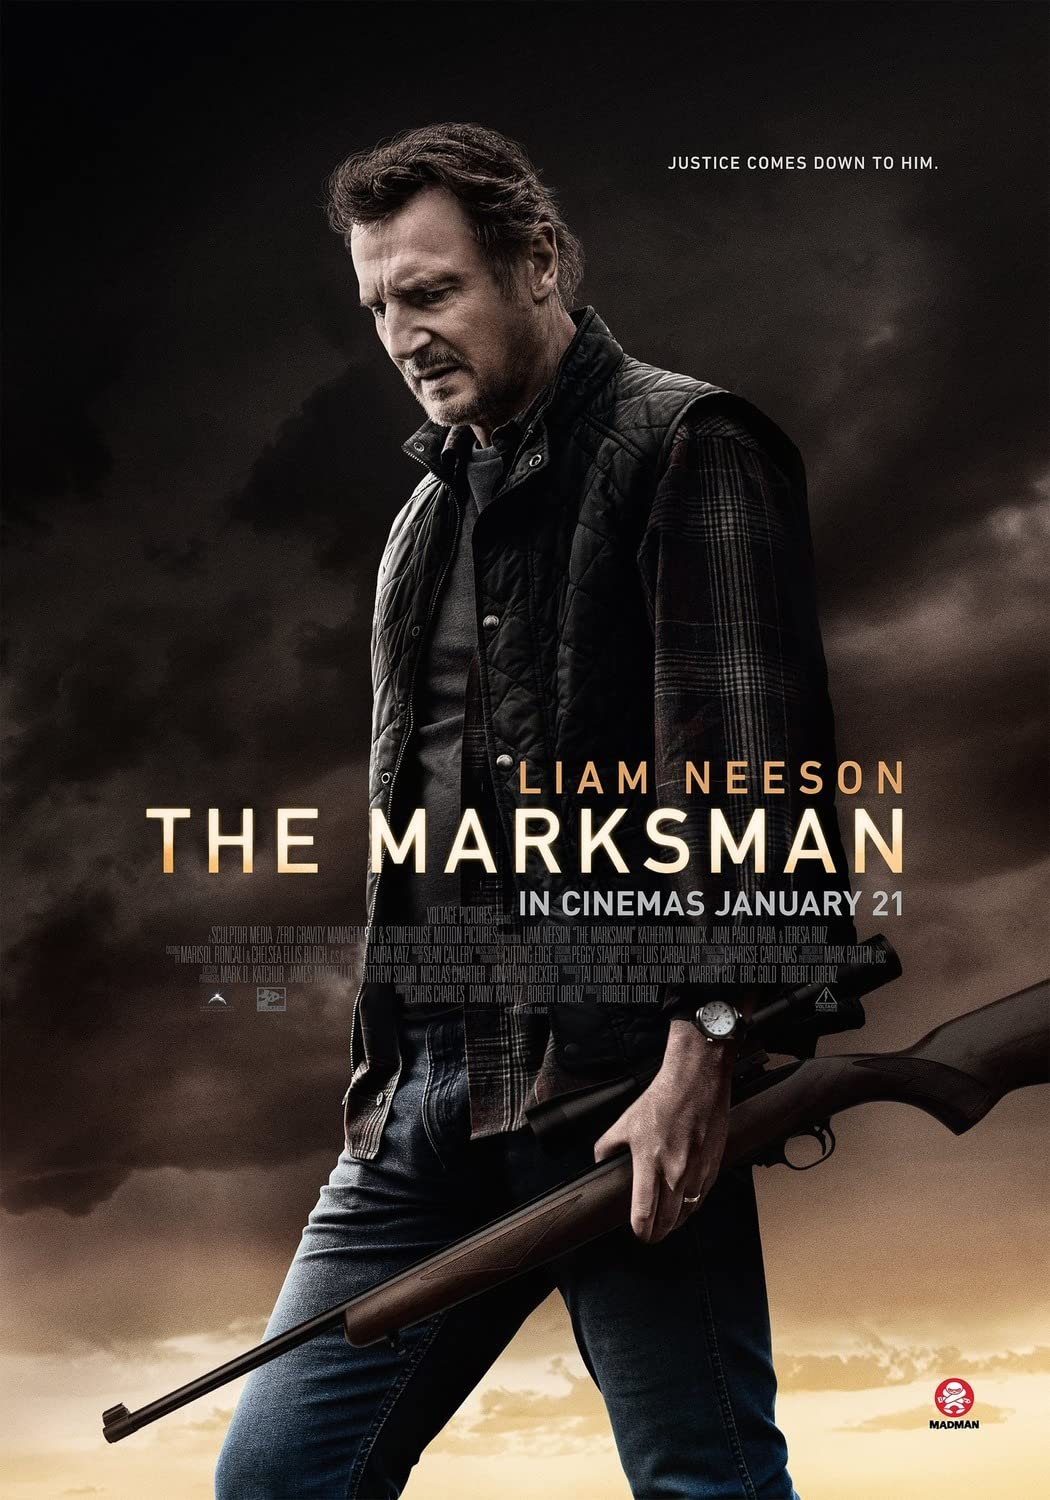 The Marksman (2021) 720p HEVC HDRip Hollywood Movie [Dual Audio] [Hindi (Cleaned) or English] x265 AAC ESubs [600MB]